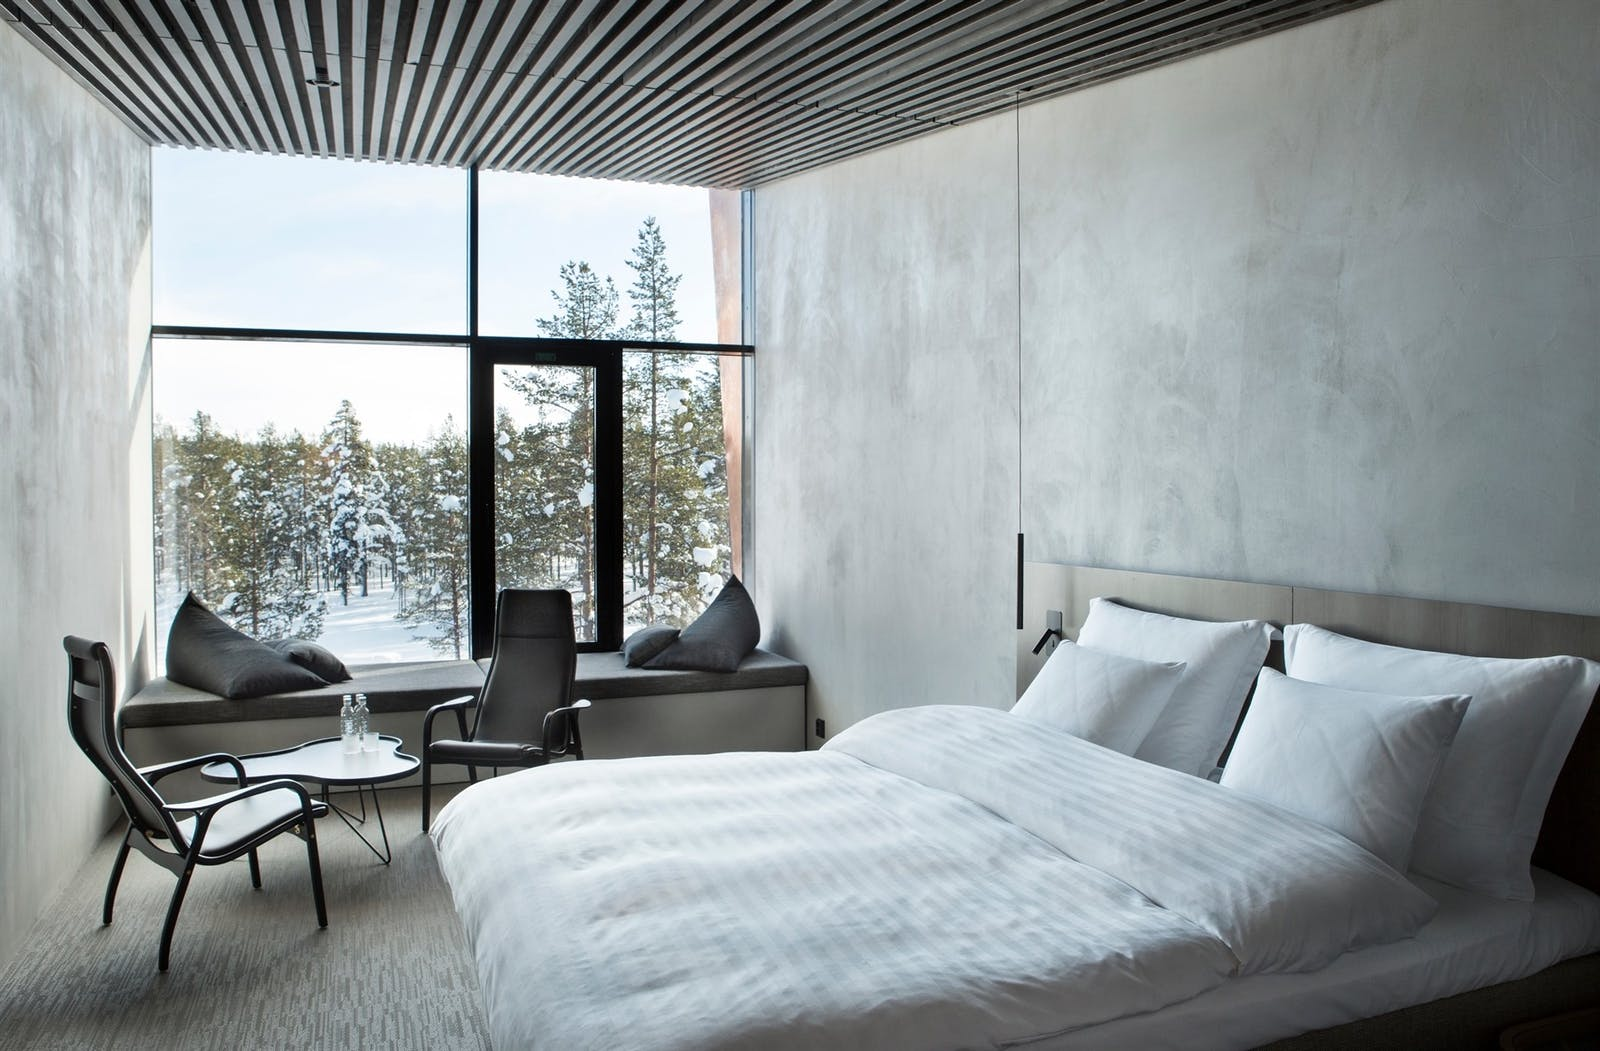 Skyview Suite, Javri Lodge, Finland